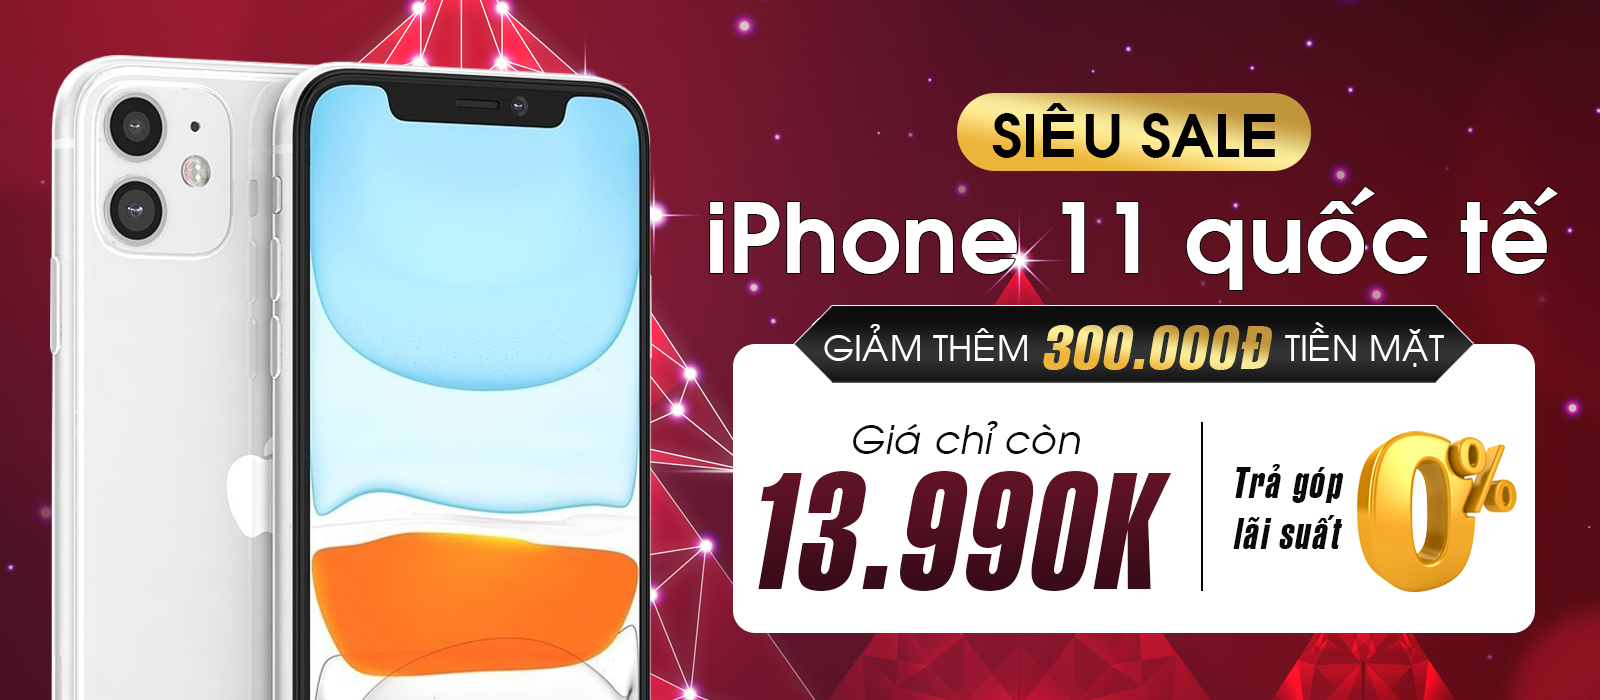 iPhone X<br>Giảm 700K